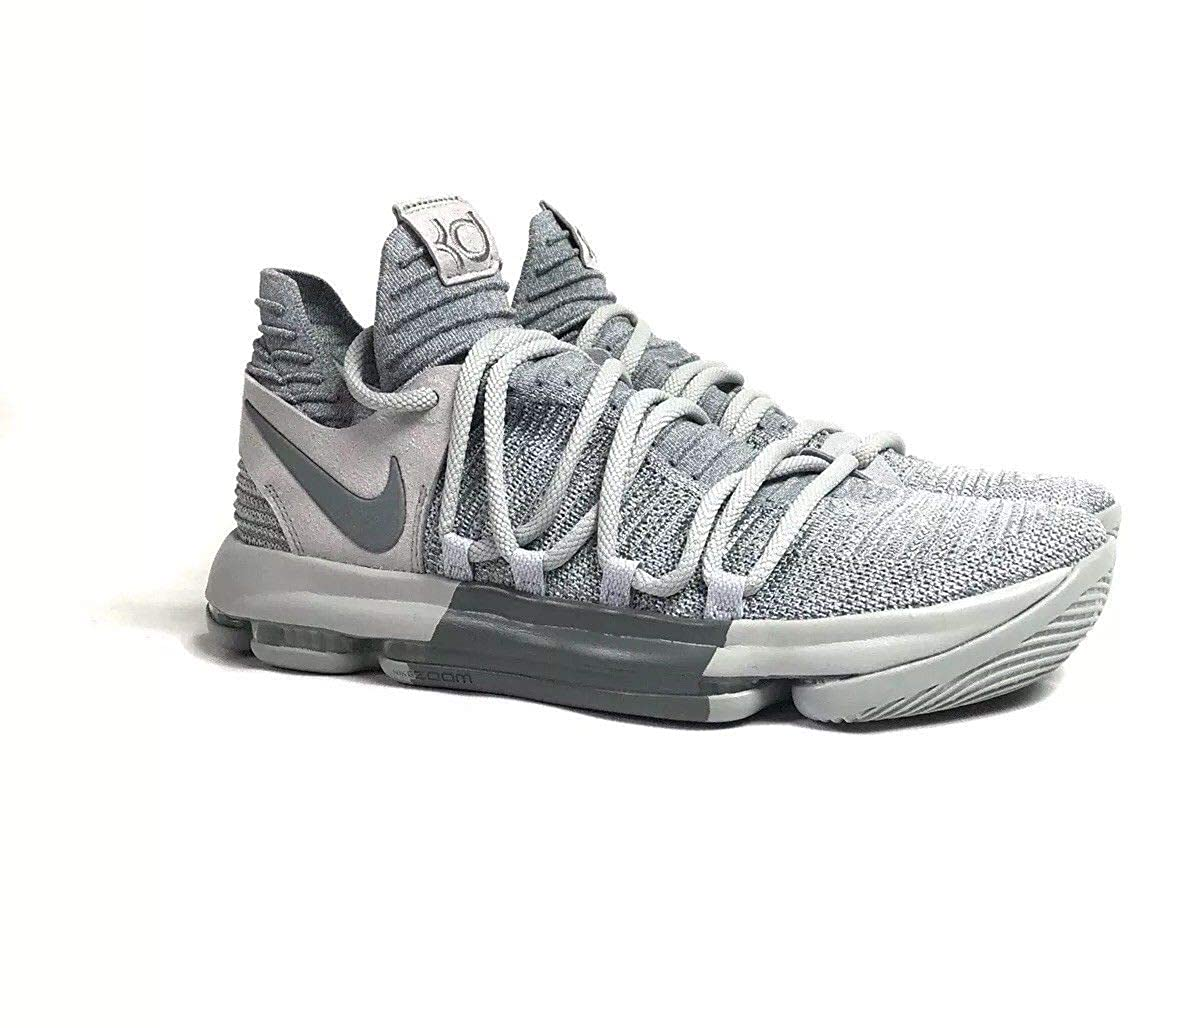 on sale 64421 7335e Nike Zoom KD10 Men's Basketball Shoes Wolf Grey Cool Grey 897815 007  (medium)